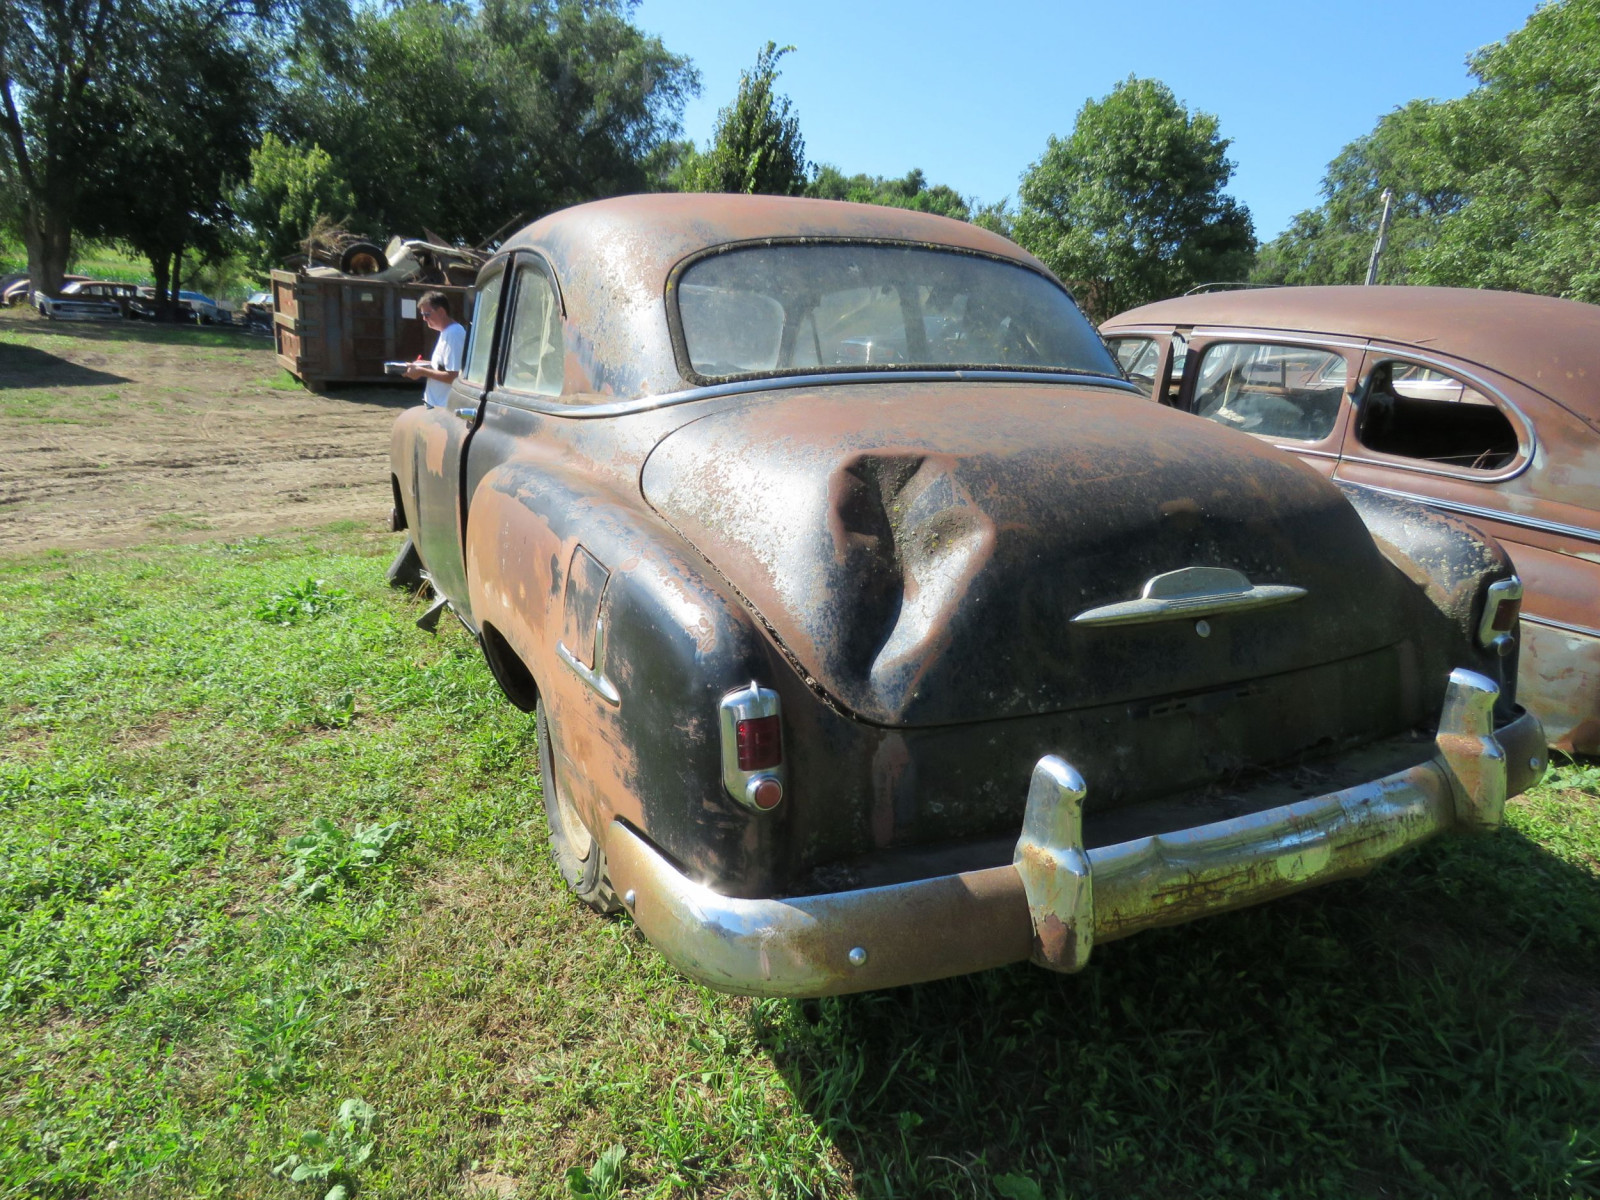 1952 Chevrolet 2dr Sedan for Project or Parts - Image 6